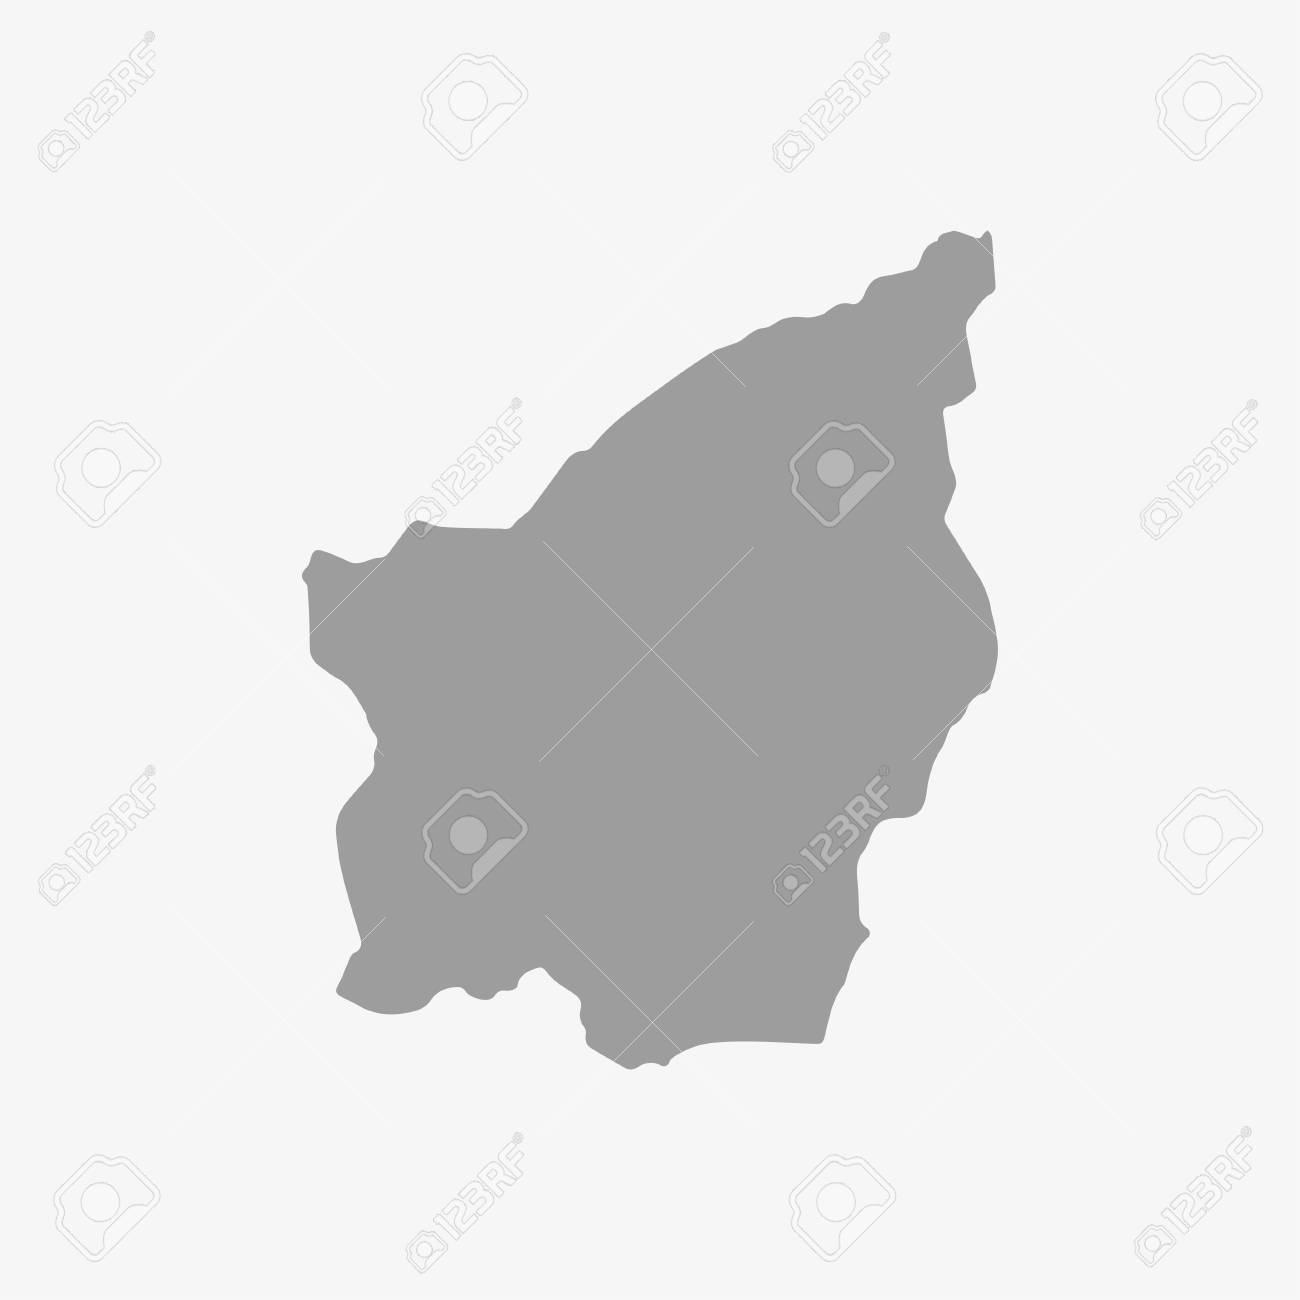 San Marino map in gray on a white background - 59803142